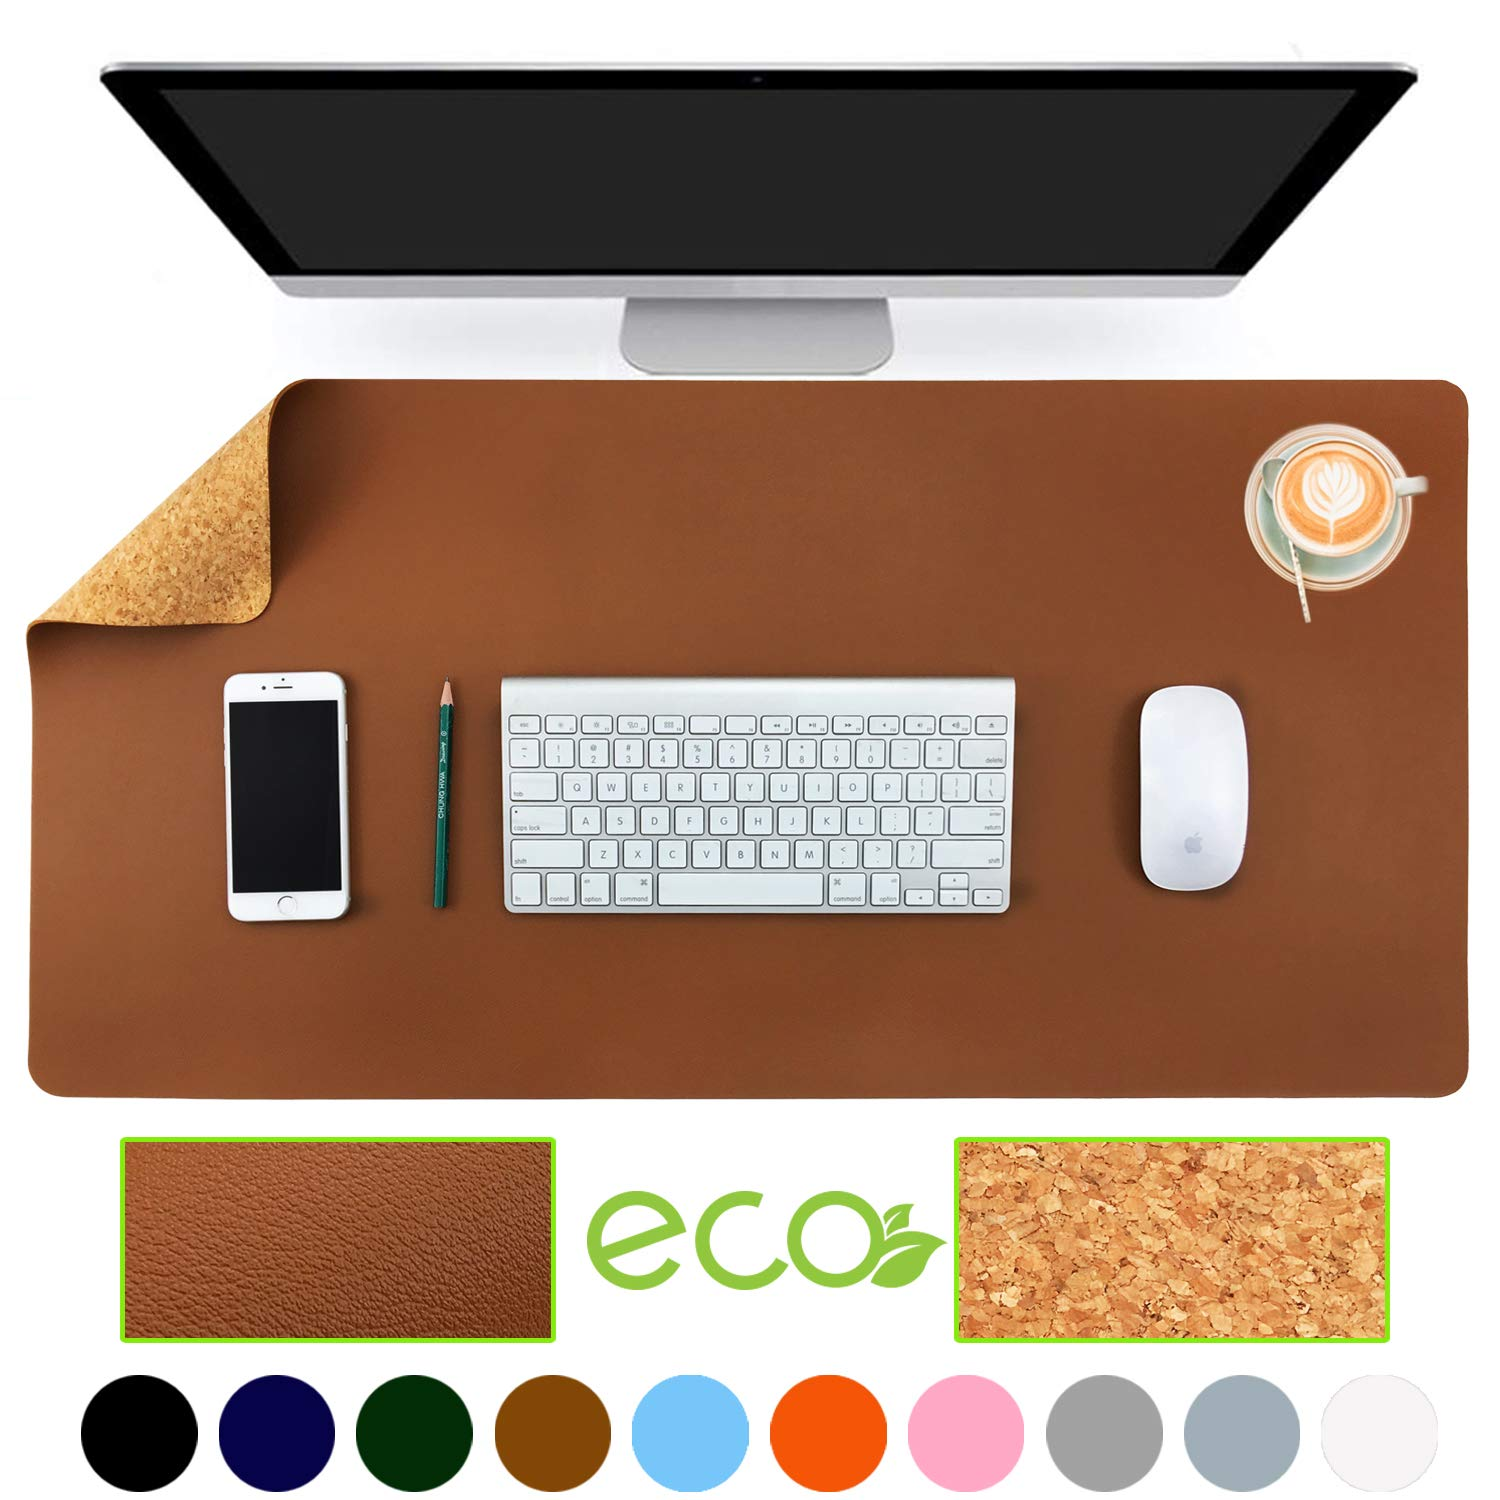 "Aothia Eco-Friendly Natural Cork & Leather Double-Sided Office Desk Mat 31.5"" x 15.7"" Mouse Pad Smooth Surface Soft Easy Clean Waterproof PU Leather Desk Protector for Office/Home Gaming (Brown)"